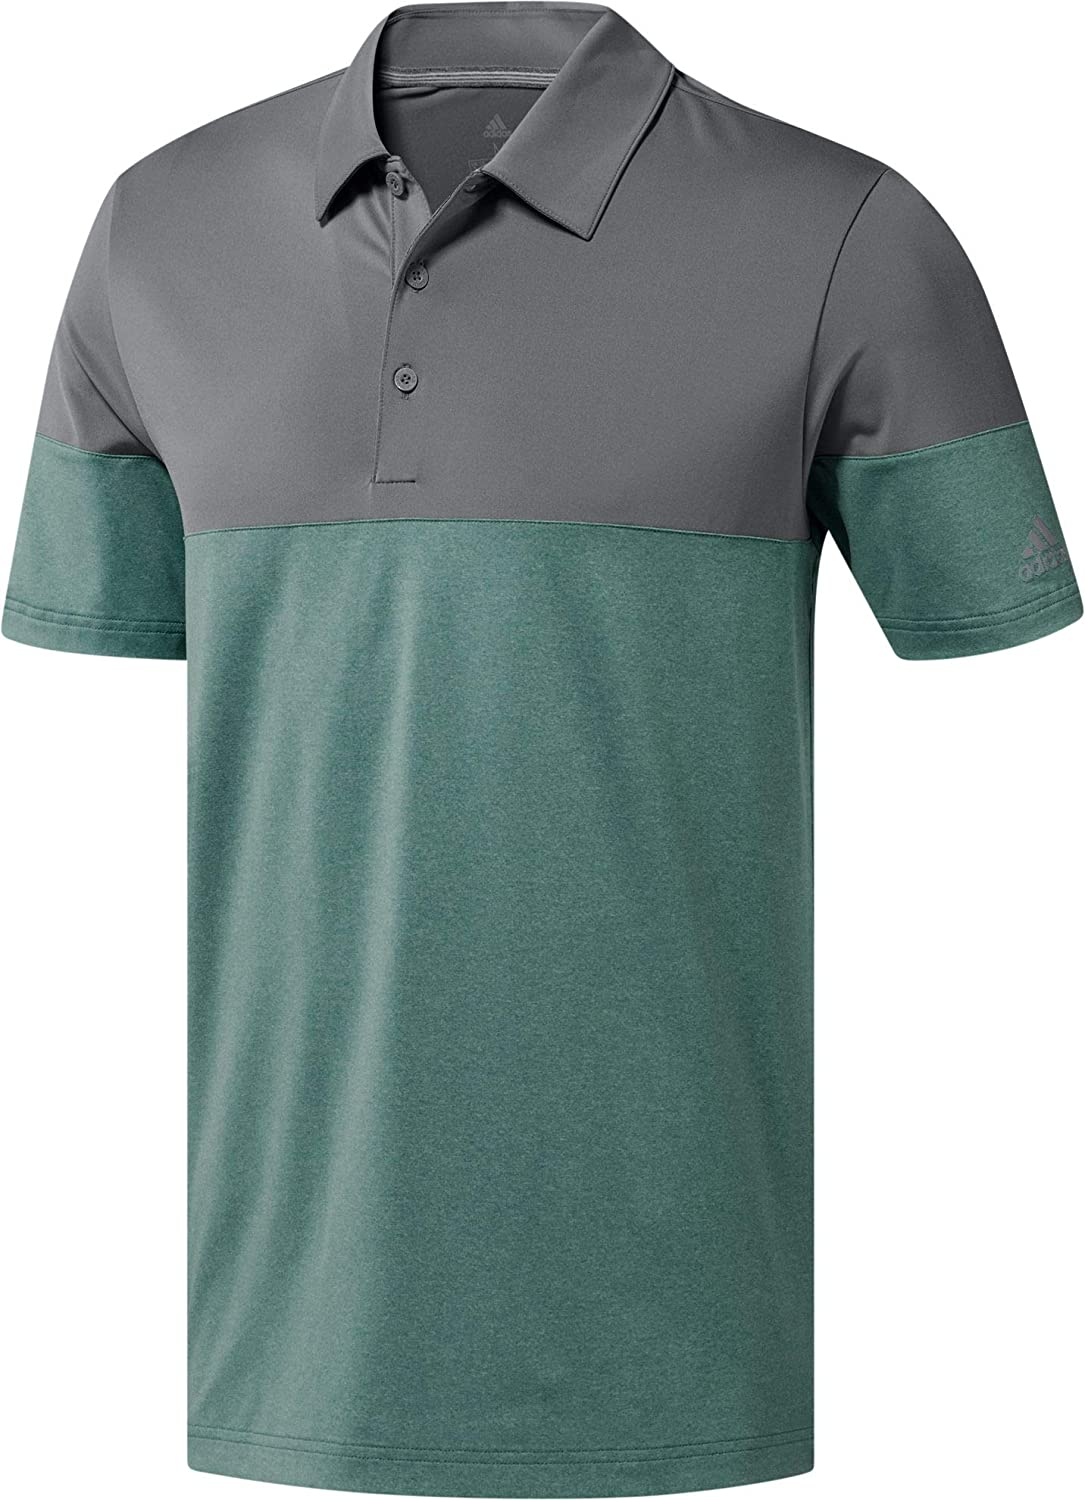 a77e3c11 Amazon.com : adidas Golf 2019 Mens Ultimate 2.0 All-Day Novelty Short Sleeve  Golf Polo Shirt : Clothing